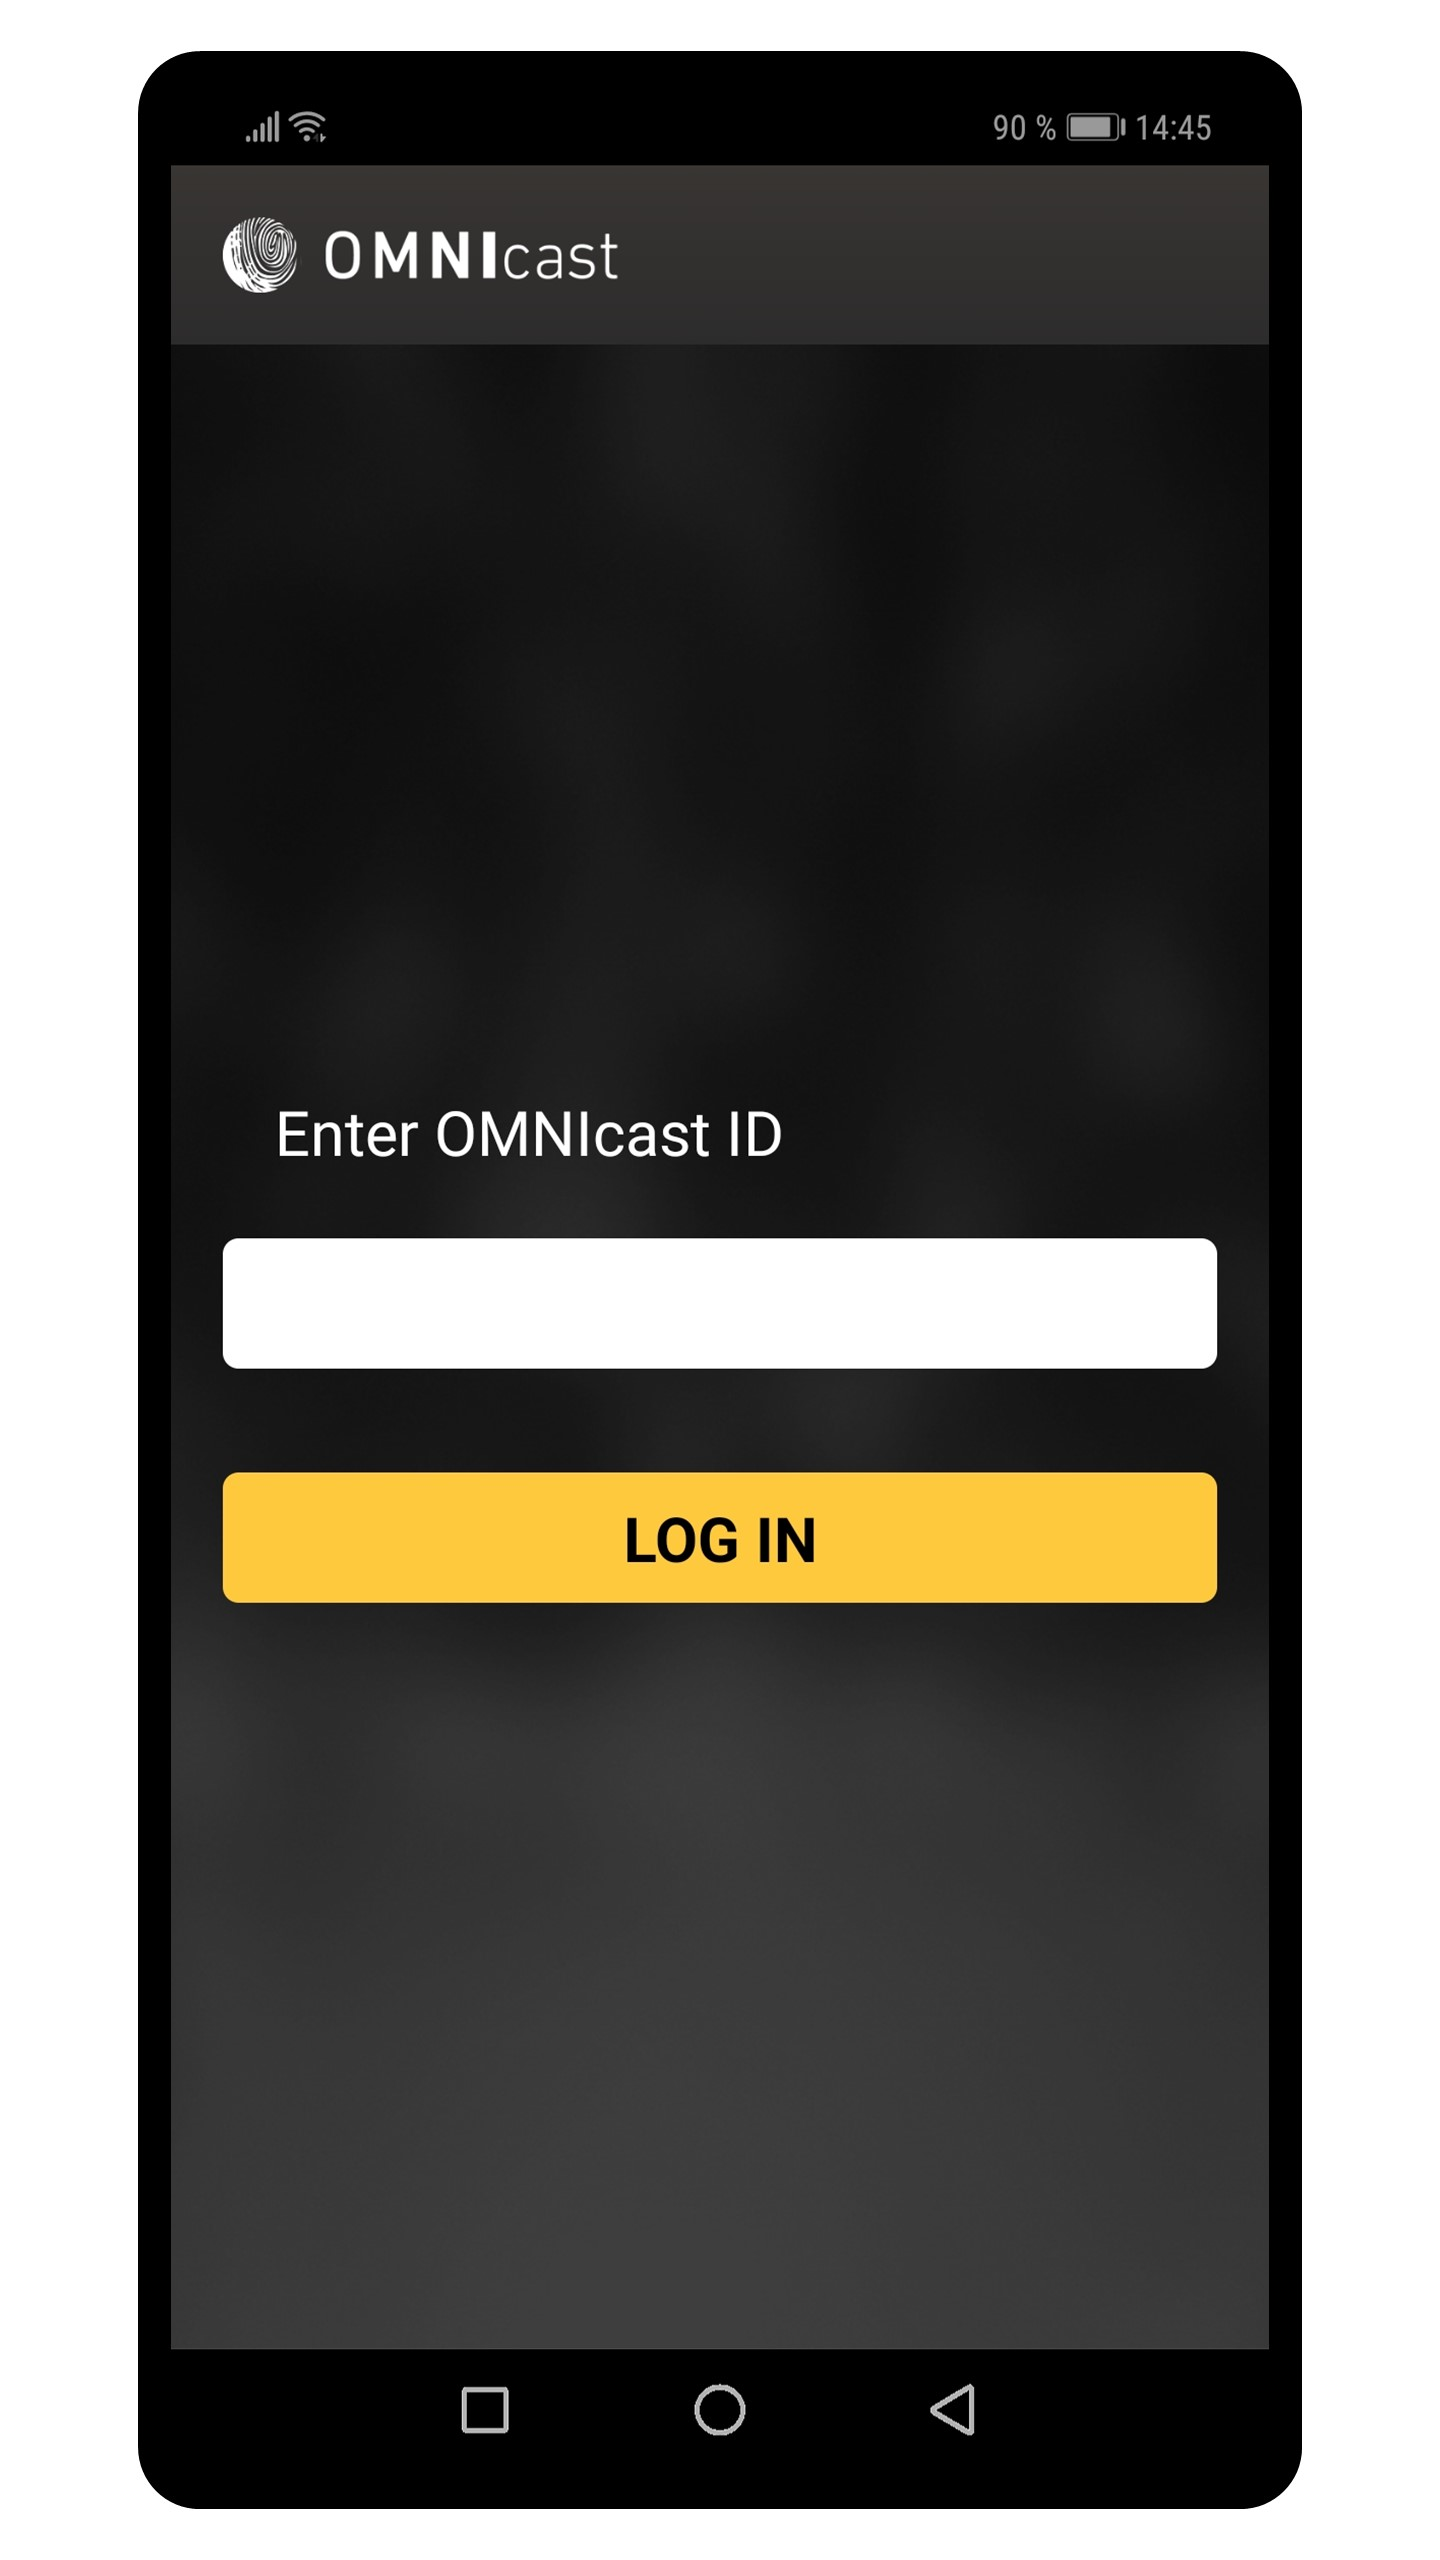 OMNIcast for Android - lisens